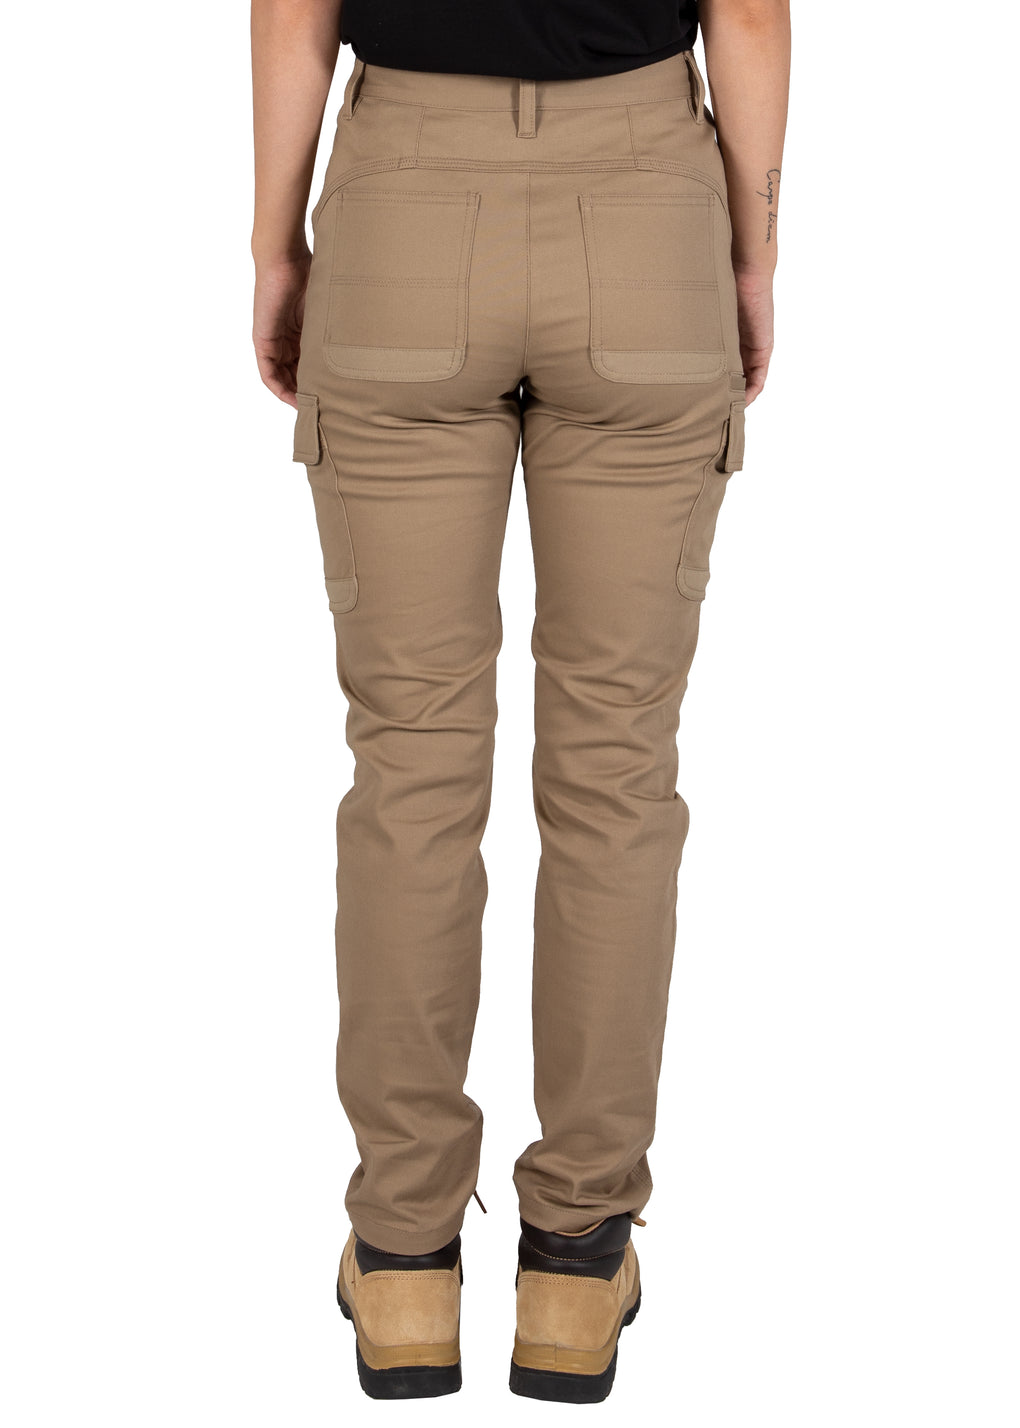 Ladies Staple Cargo Work Pants